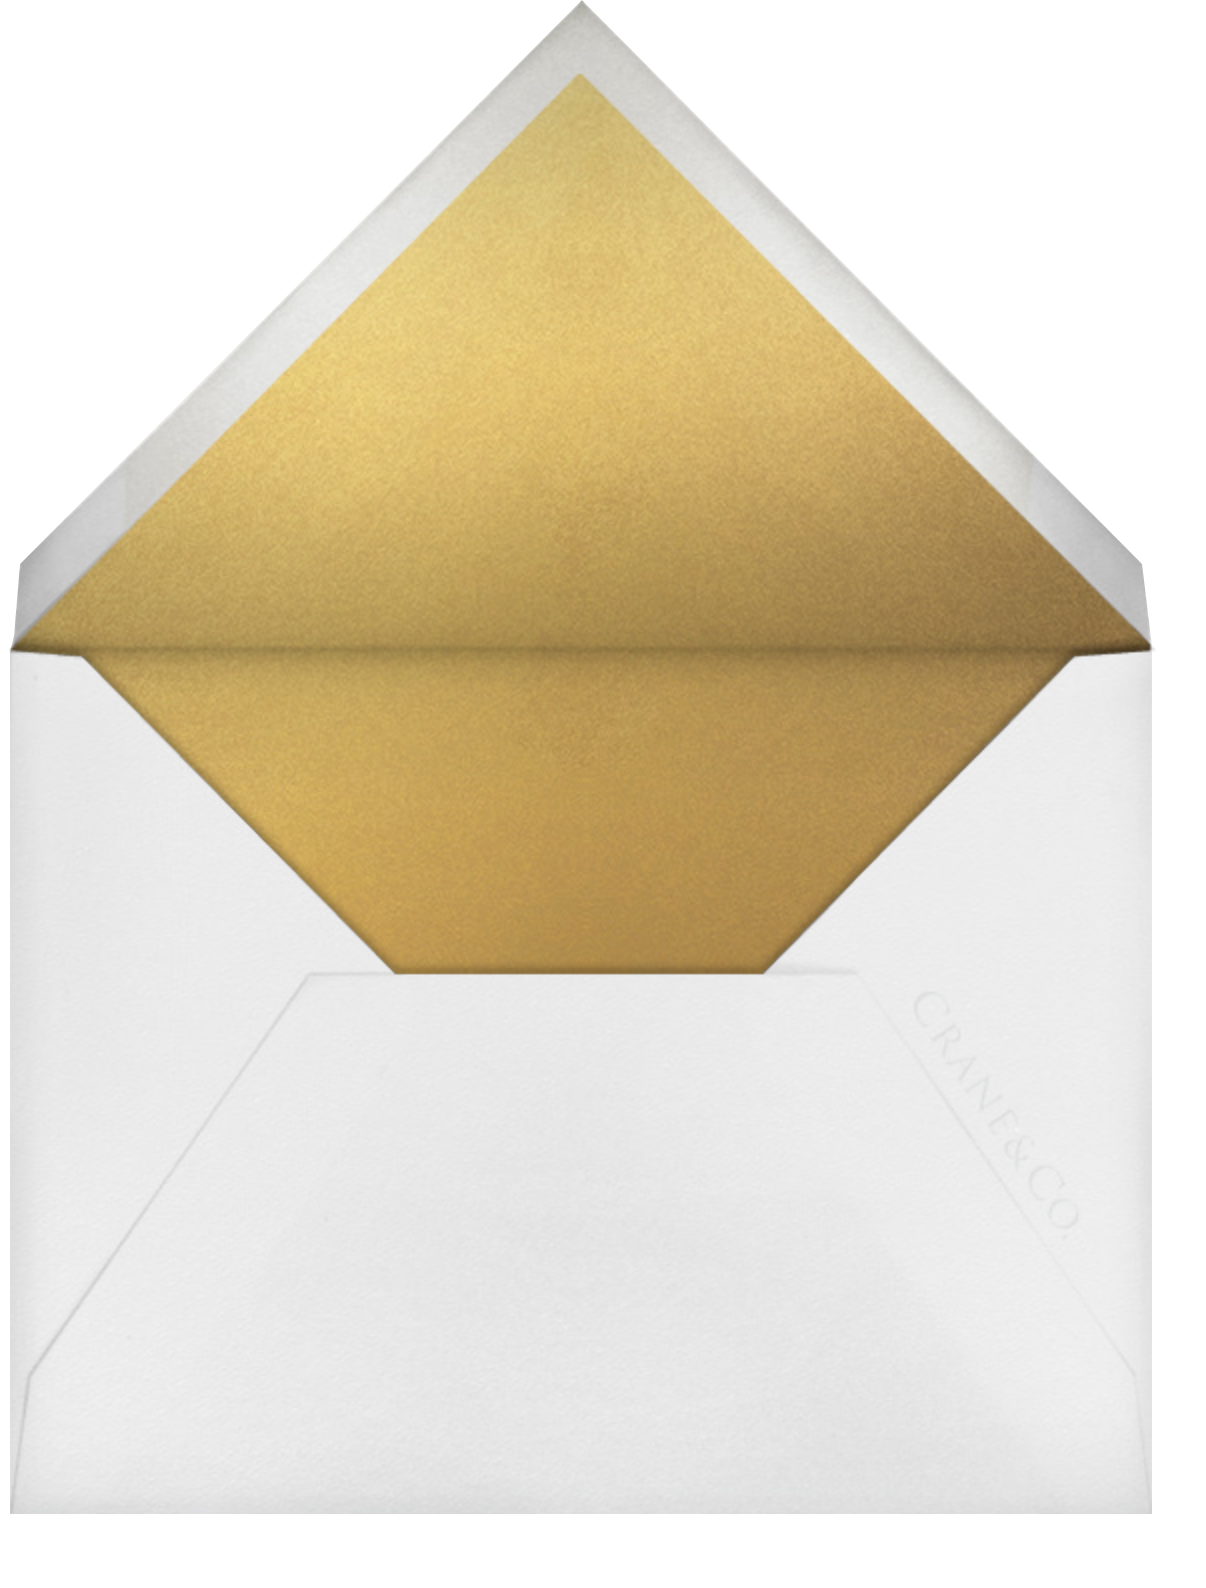 Collins Avenue (Save The Date) - Medium Gold - Crane & Co. - Save the date - envelope back